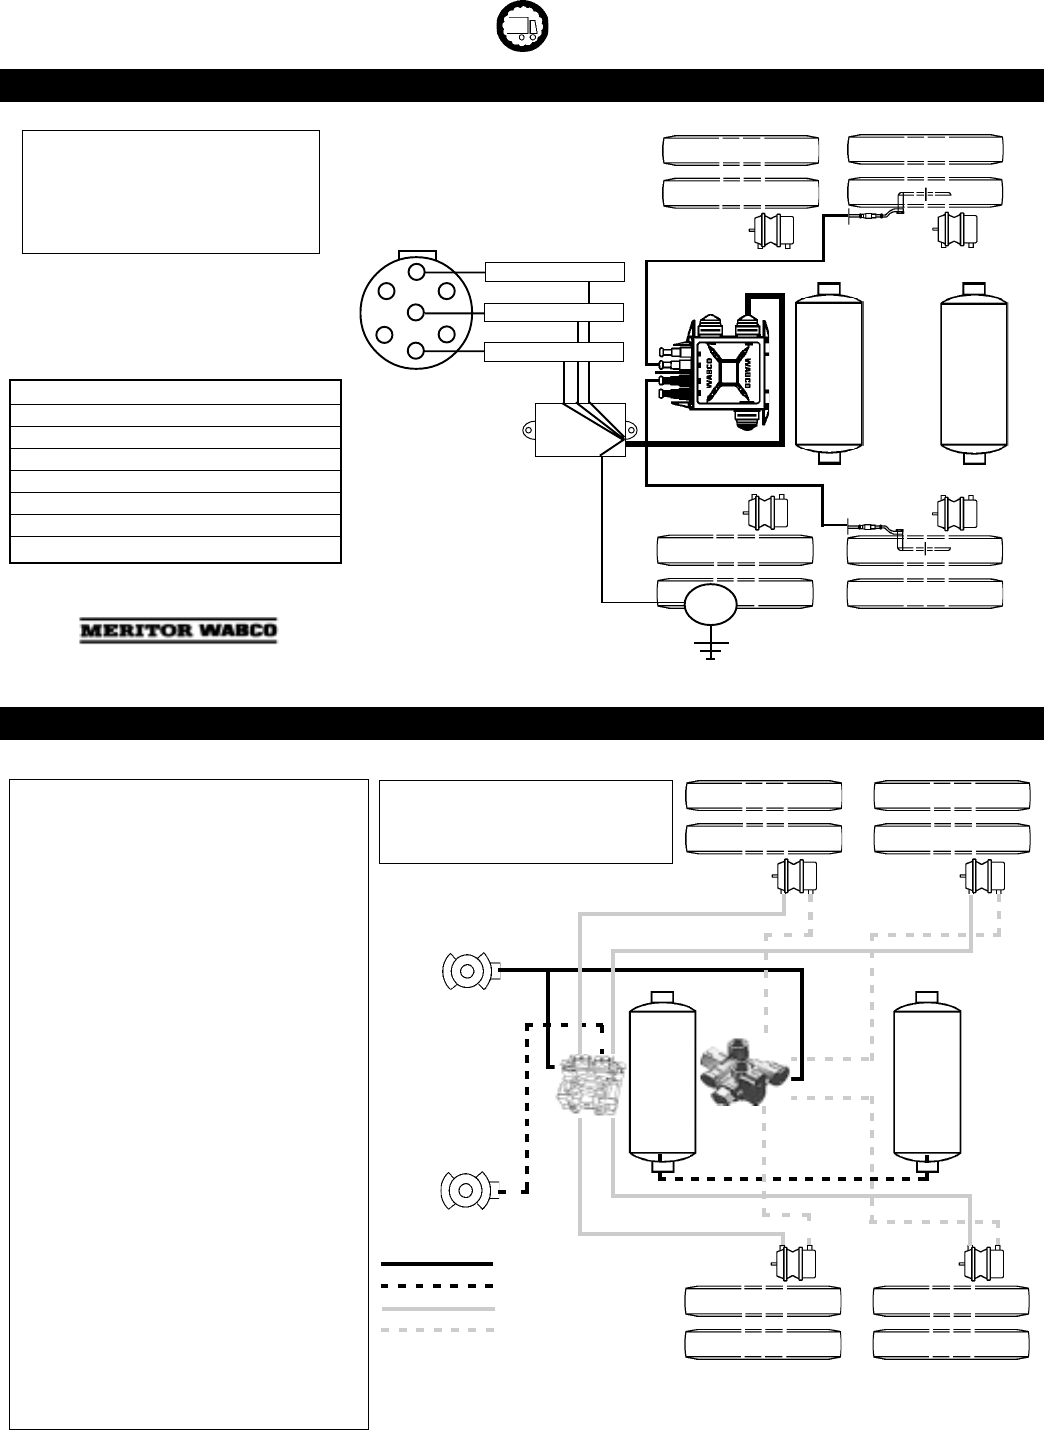 hight resolution of abs air valves dryers 285252 section1 rh usermanual wiki challenger wiring diagram wabco r955321 r955320 meritor